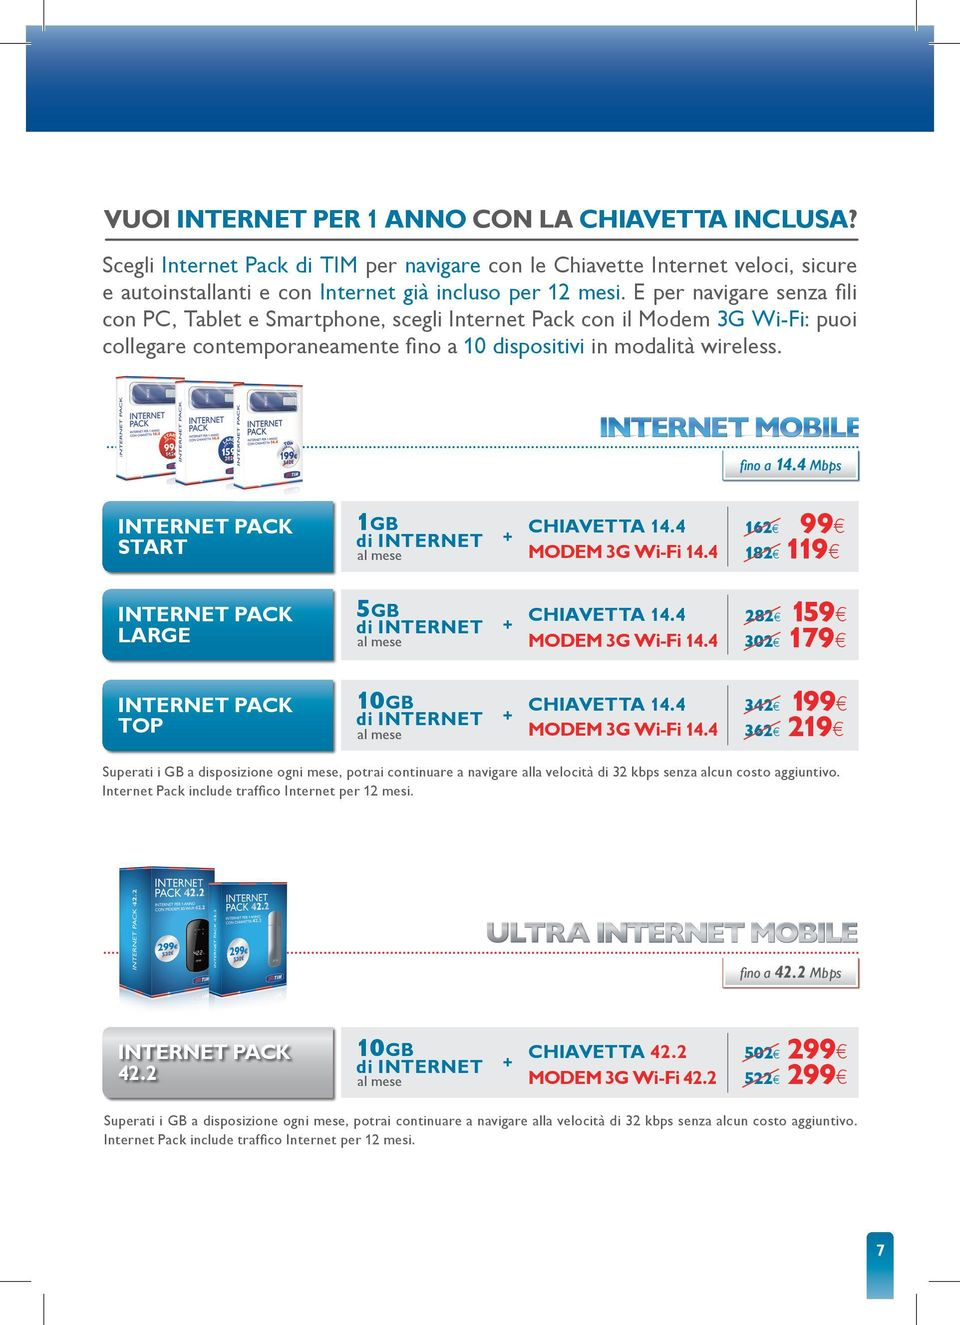 4 Mbps Internet pack start 1Gb di Internet + chiavetta 14.4 Modem 3g wi-fi 14.4 162 182 99 119 Internet pack Large 5Gb di Internet + chiavetta 14.4 Modem 3g wi-fi 14.4 282 302 159 179 Internet pack top 10Gb di Internet + chiavetta 14.